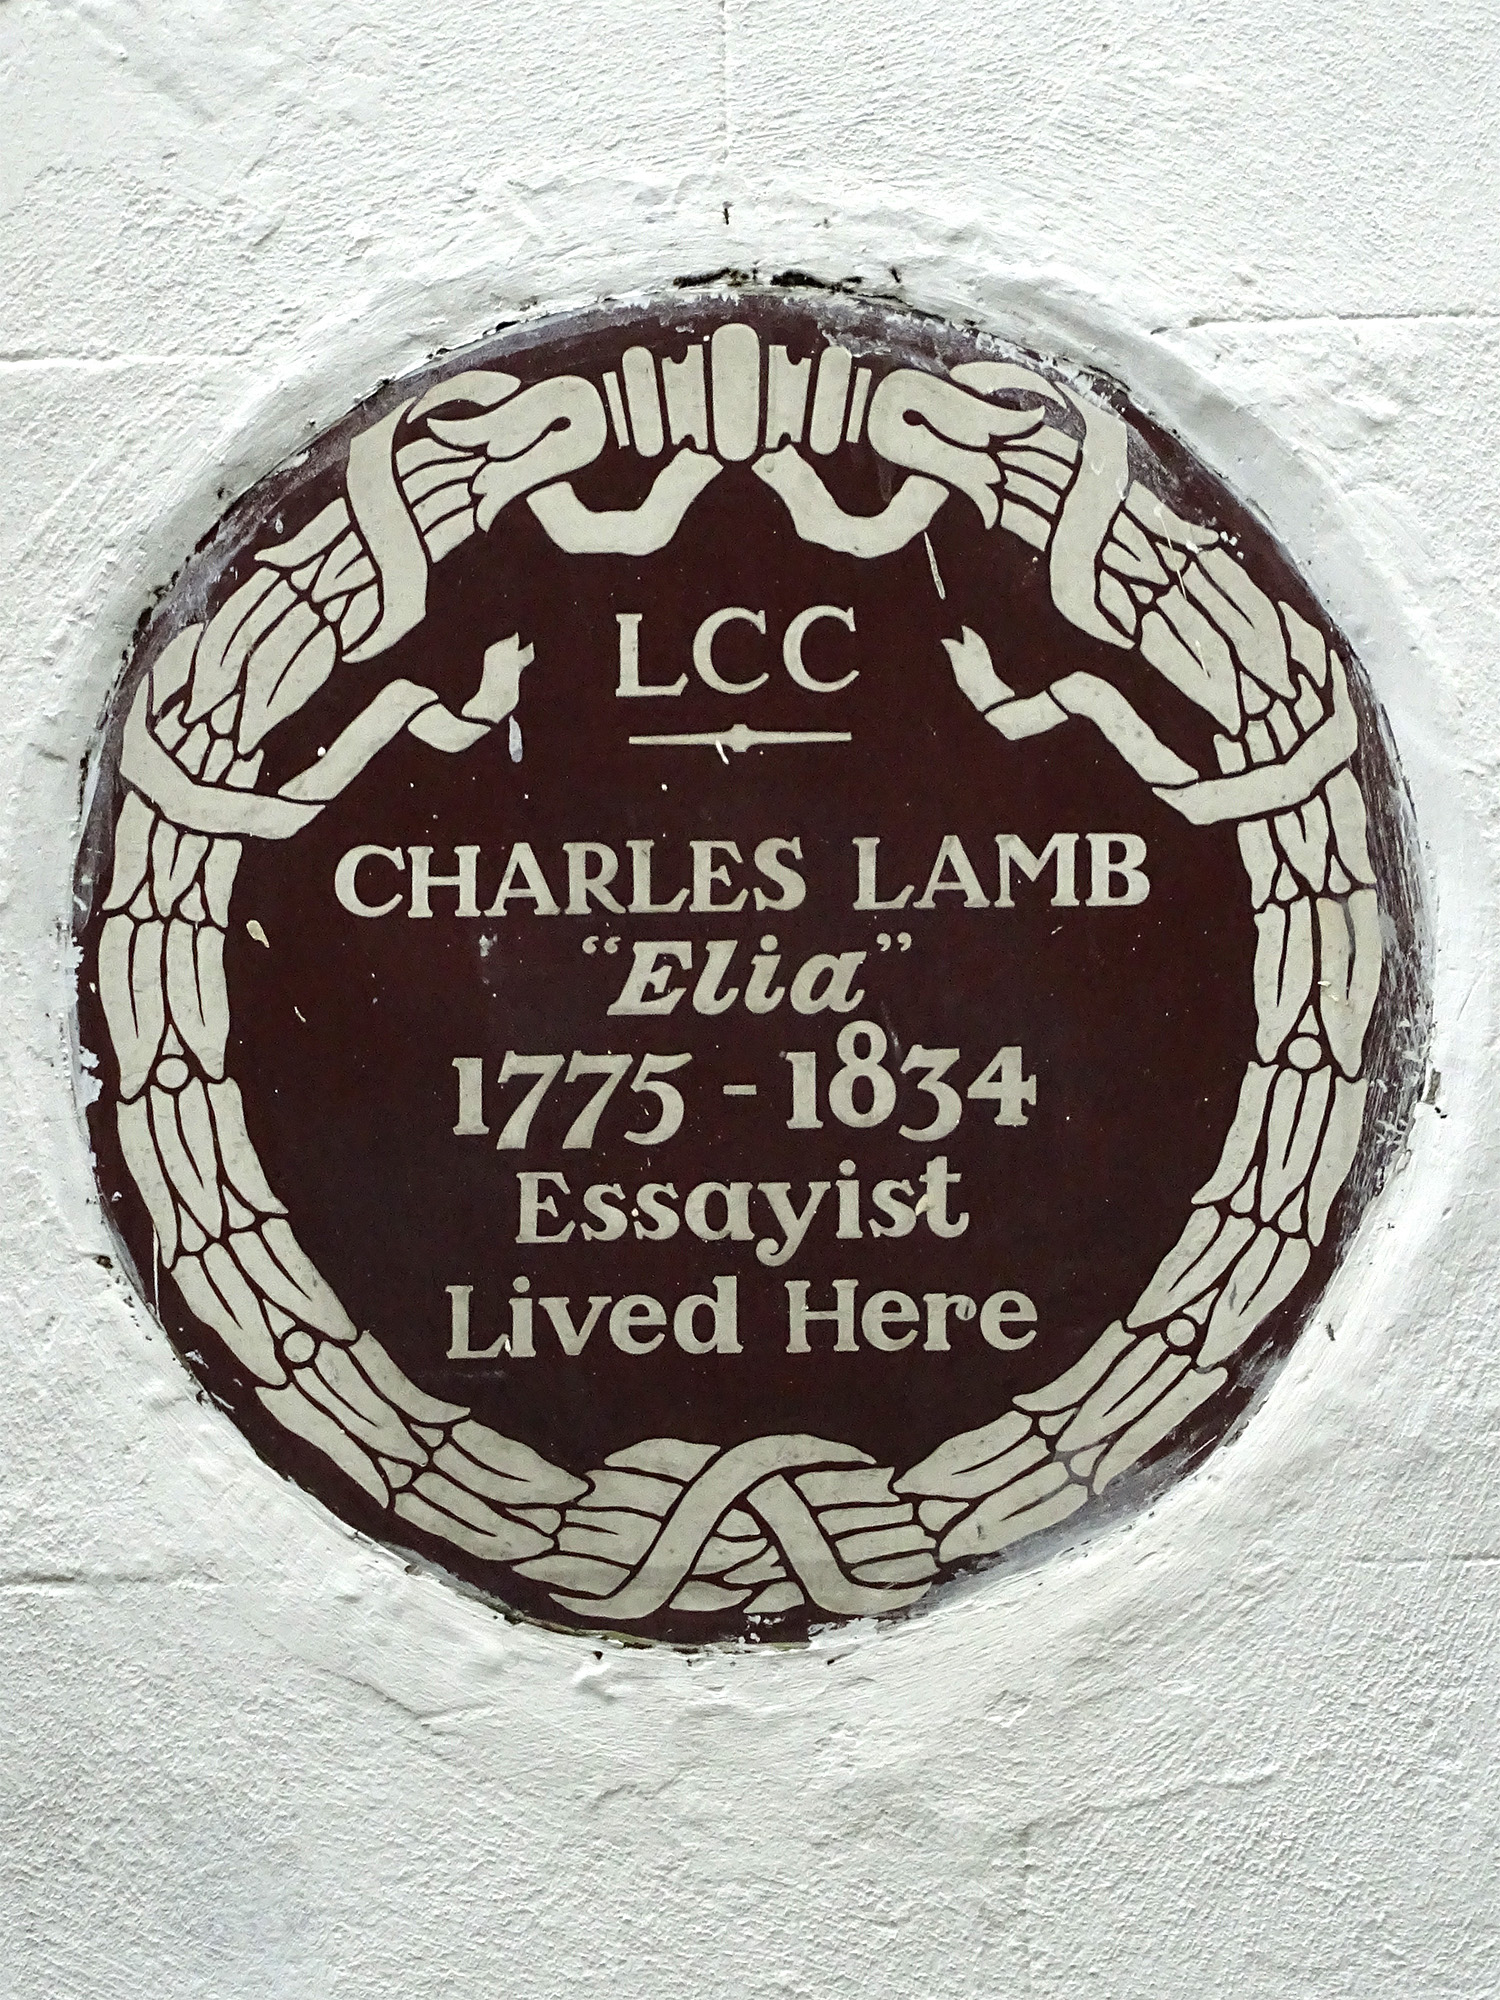 charles lamb essays of elia old china summary Charles lamb (10 february 1775 – 27 december 1834) was an english essayist, poet, and antiquarian, best known for his essays of elia and for the children's book tales from shakespeare.